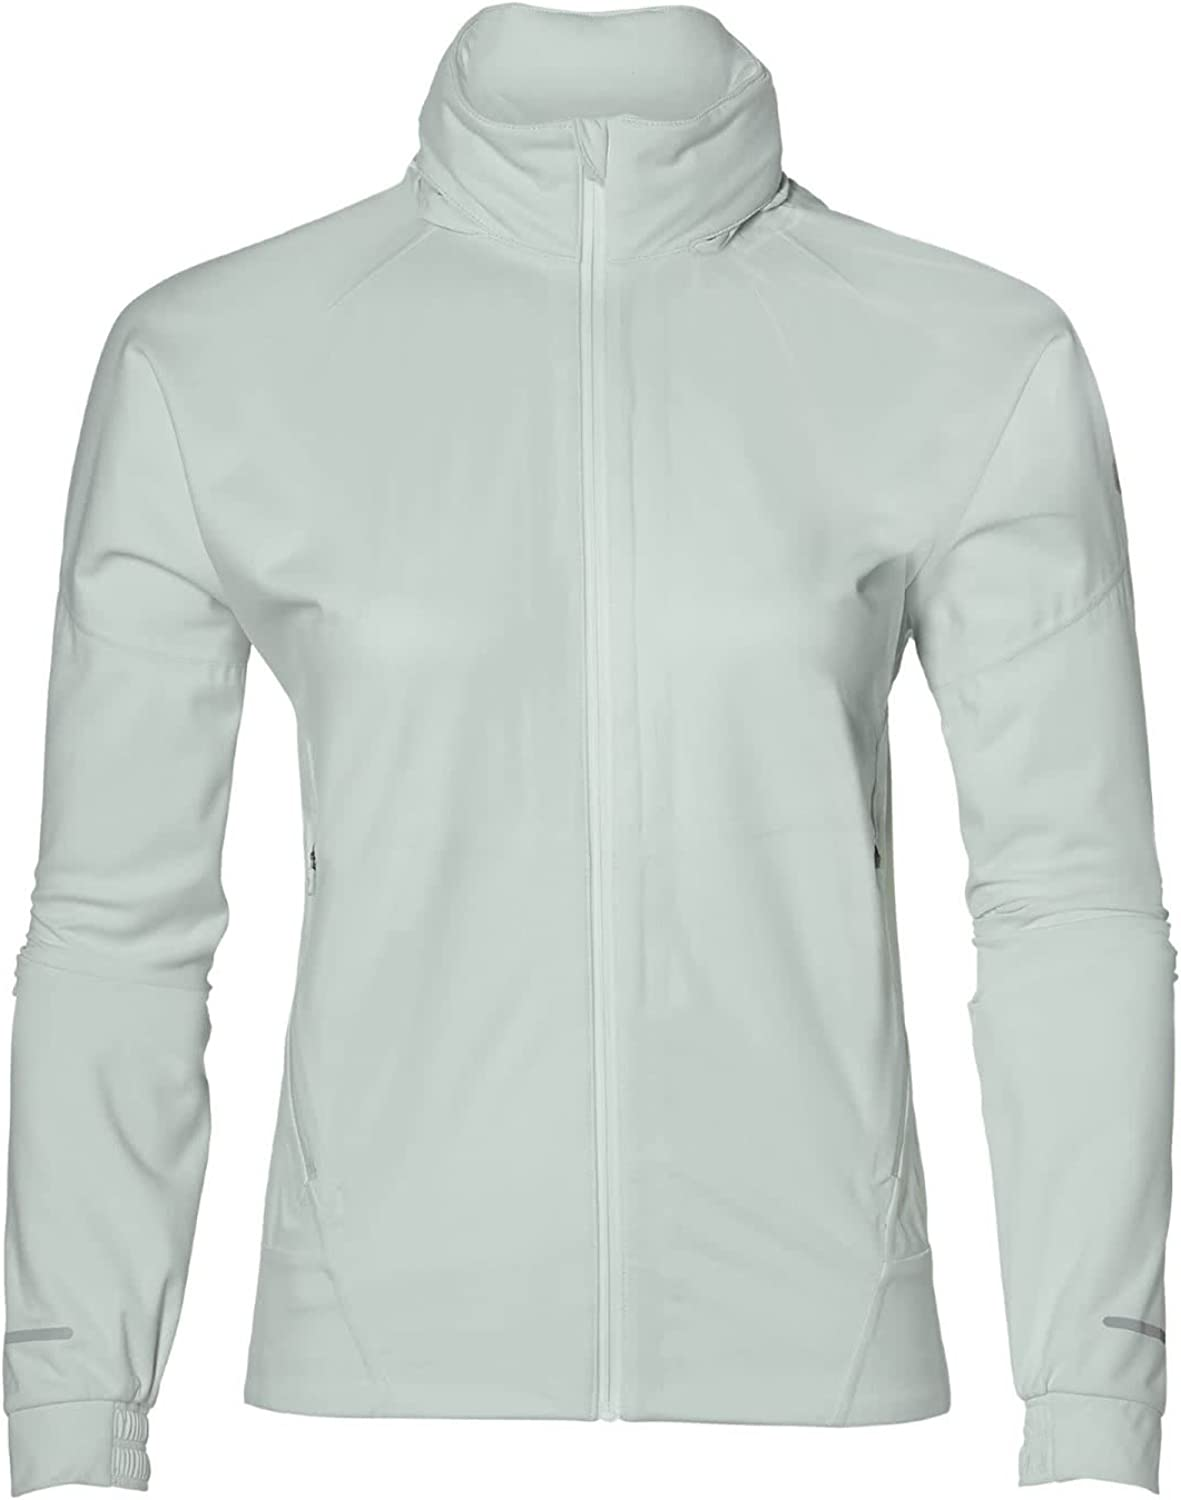 Asics Accelerate Running Jacket in